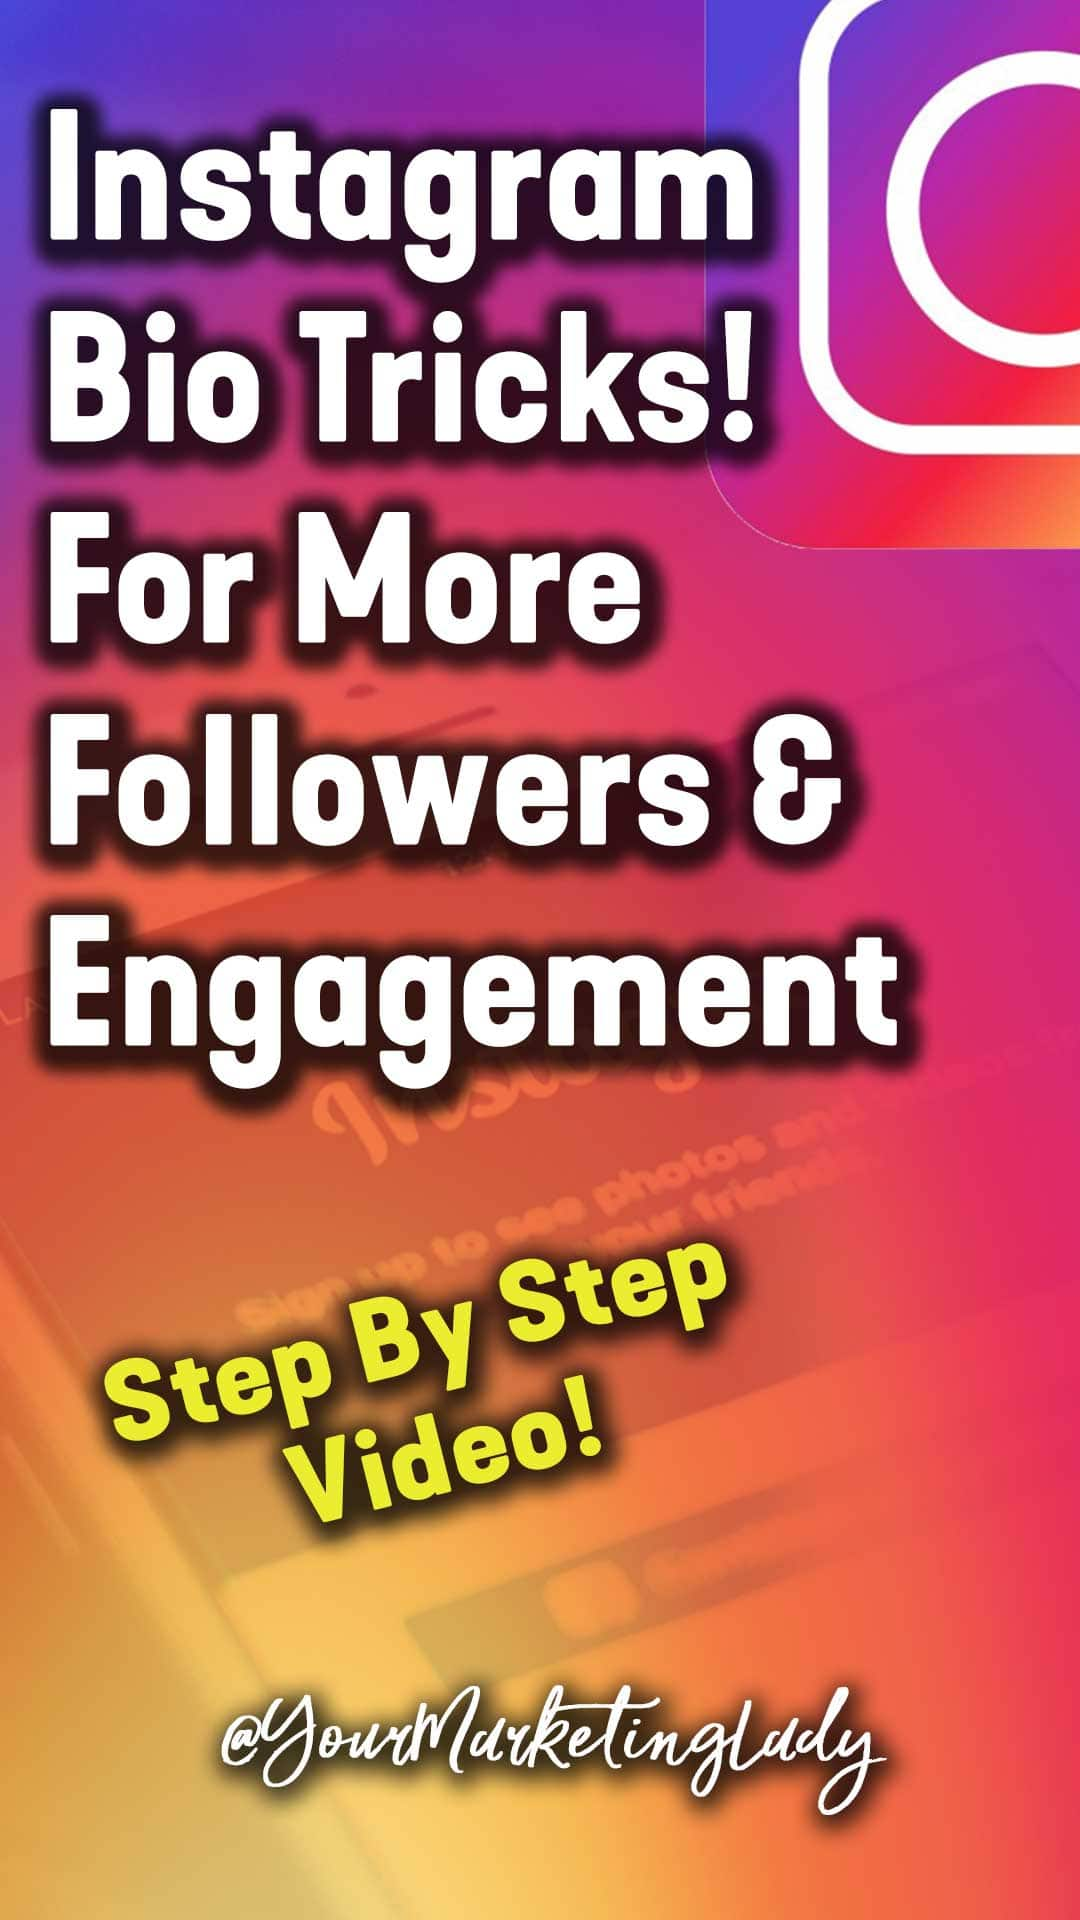 5 Instagram bio tricks and tips that will help you optimize your bio for more followers and more engagement on Instagram. #Instagrammarketing #Instagramtips #socialmediamarketing #socialmediatips